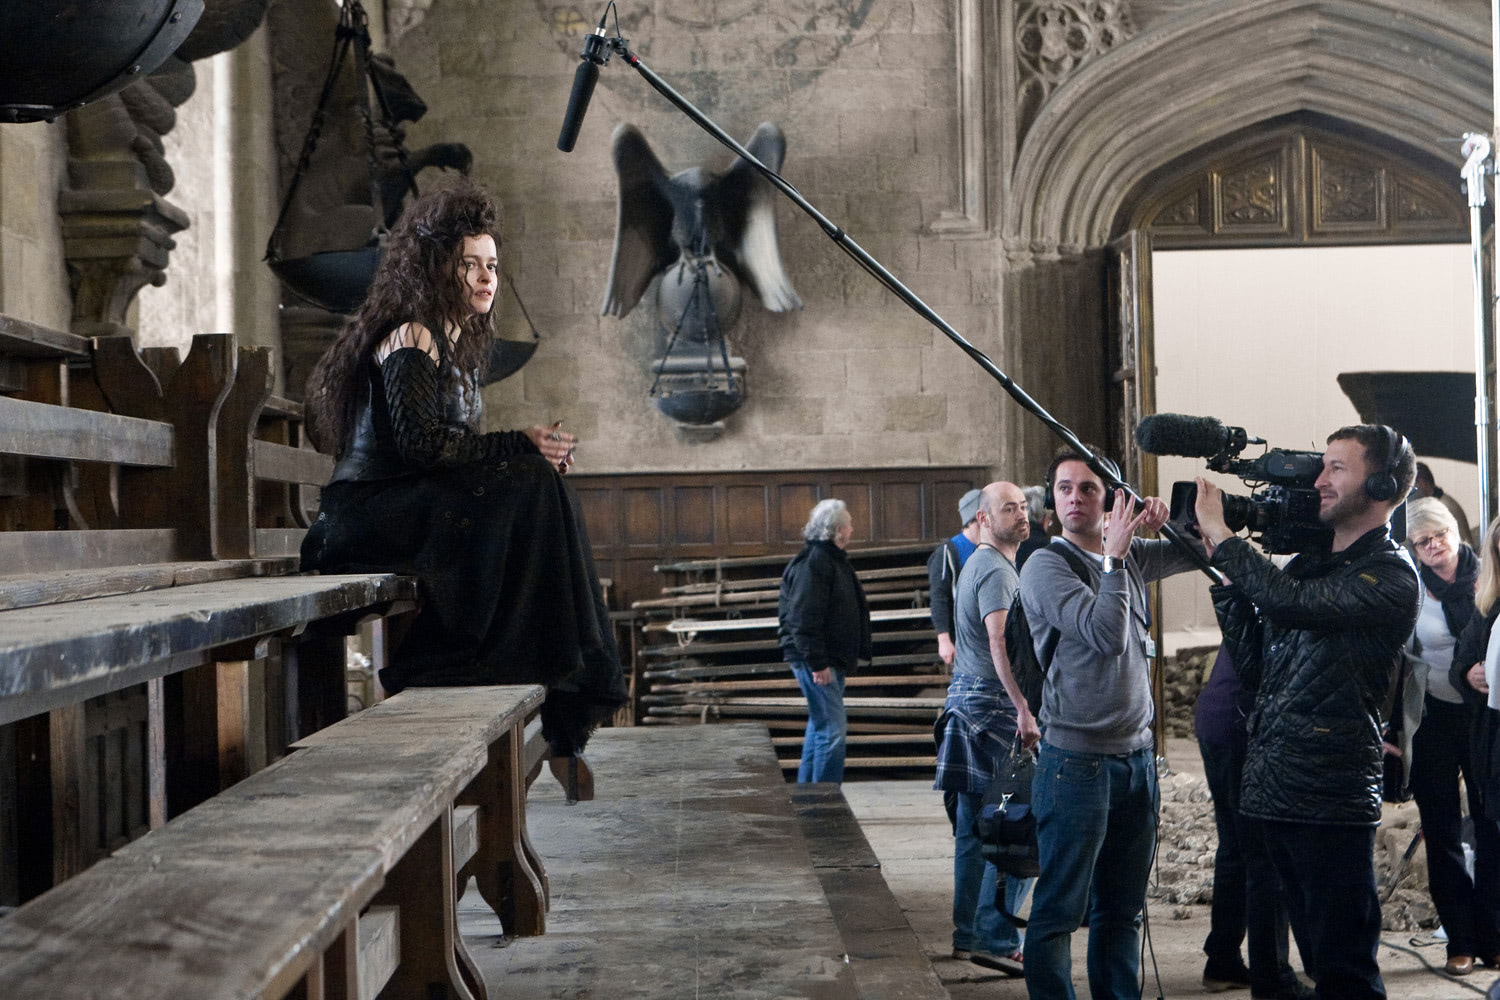 Helena Bonham Carter filming in the Great Hall